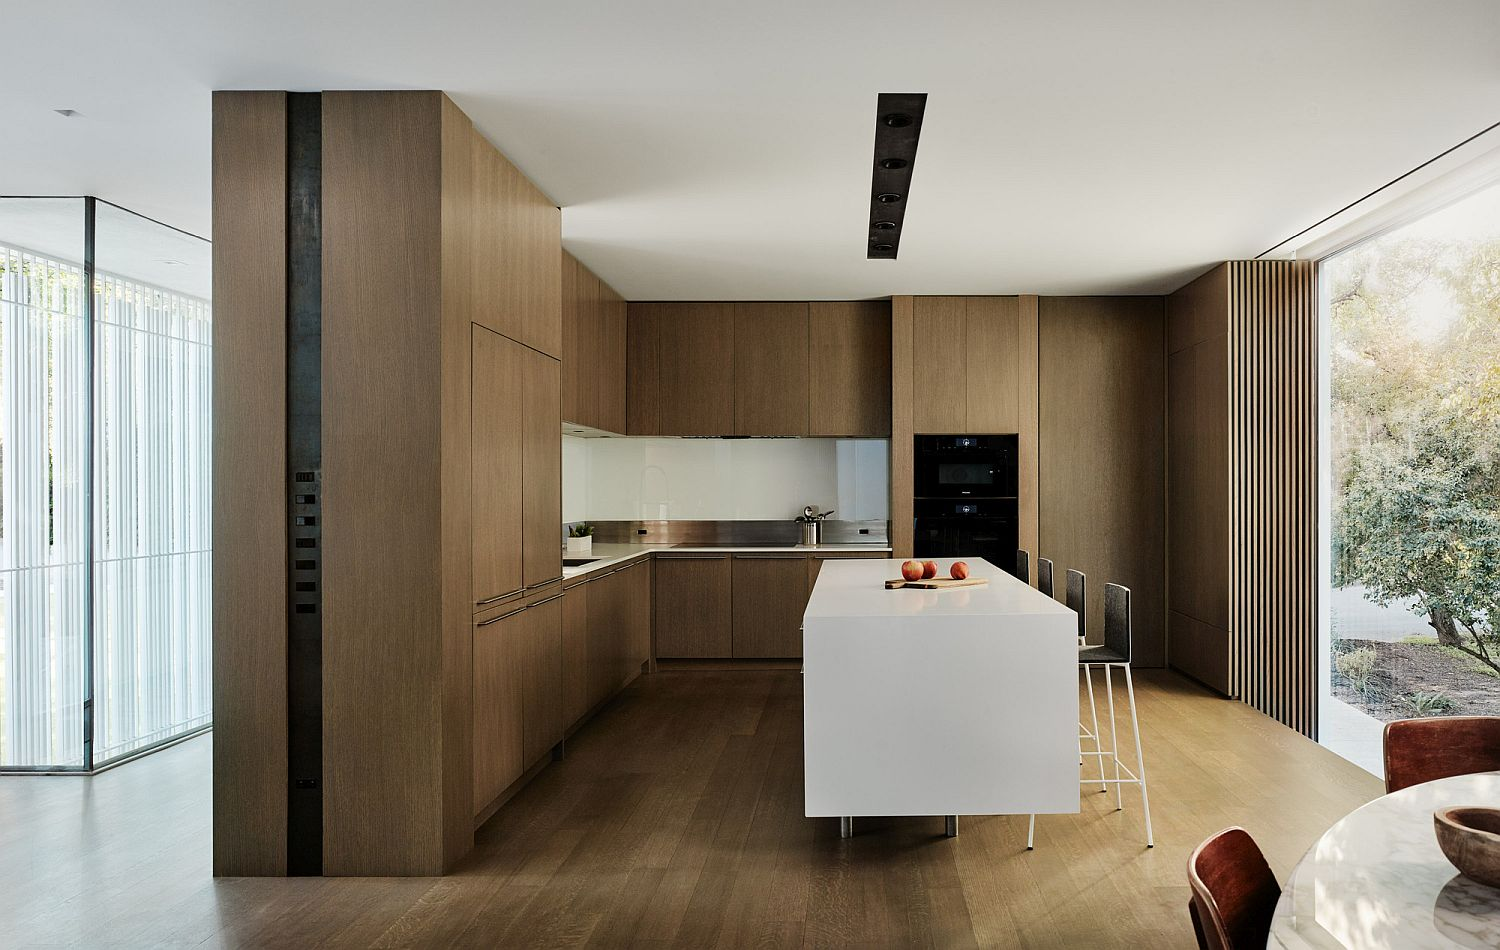 Spacious kitchen with wooden cabinets, white island and connectivity with the outdoors